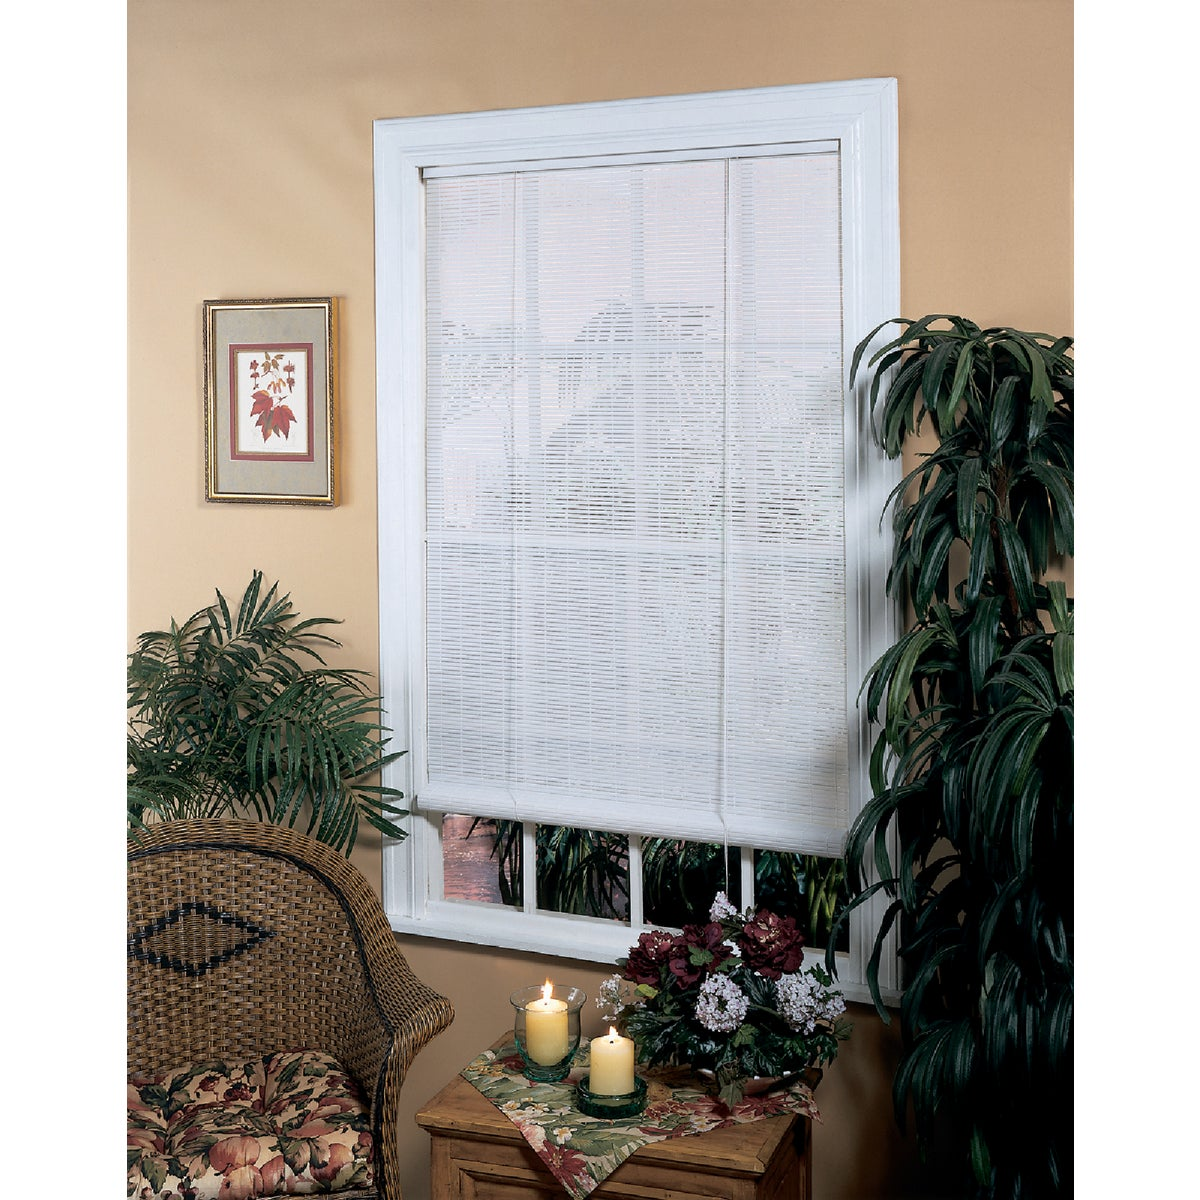 48X72 WHT ROLL-UP BLIND - 0320146 by Lewis Hyman